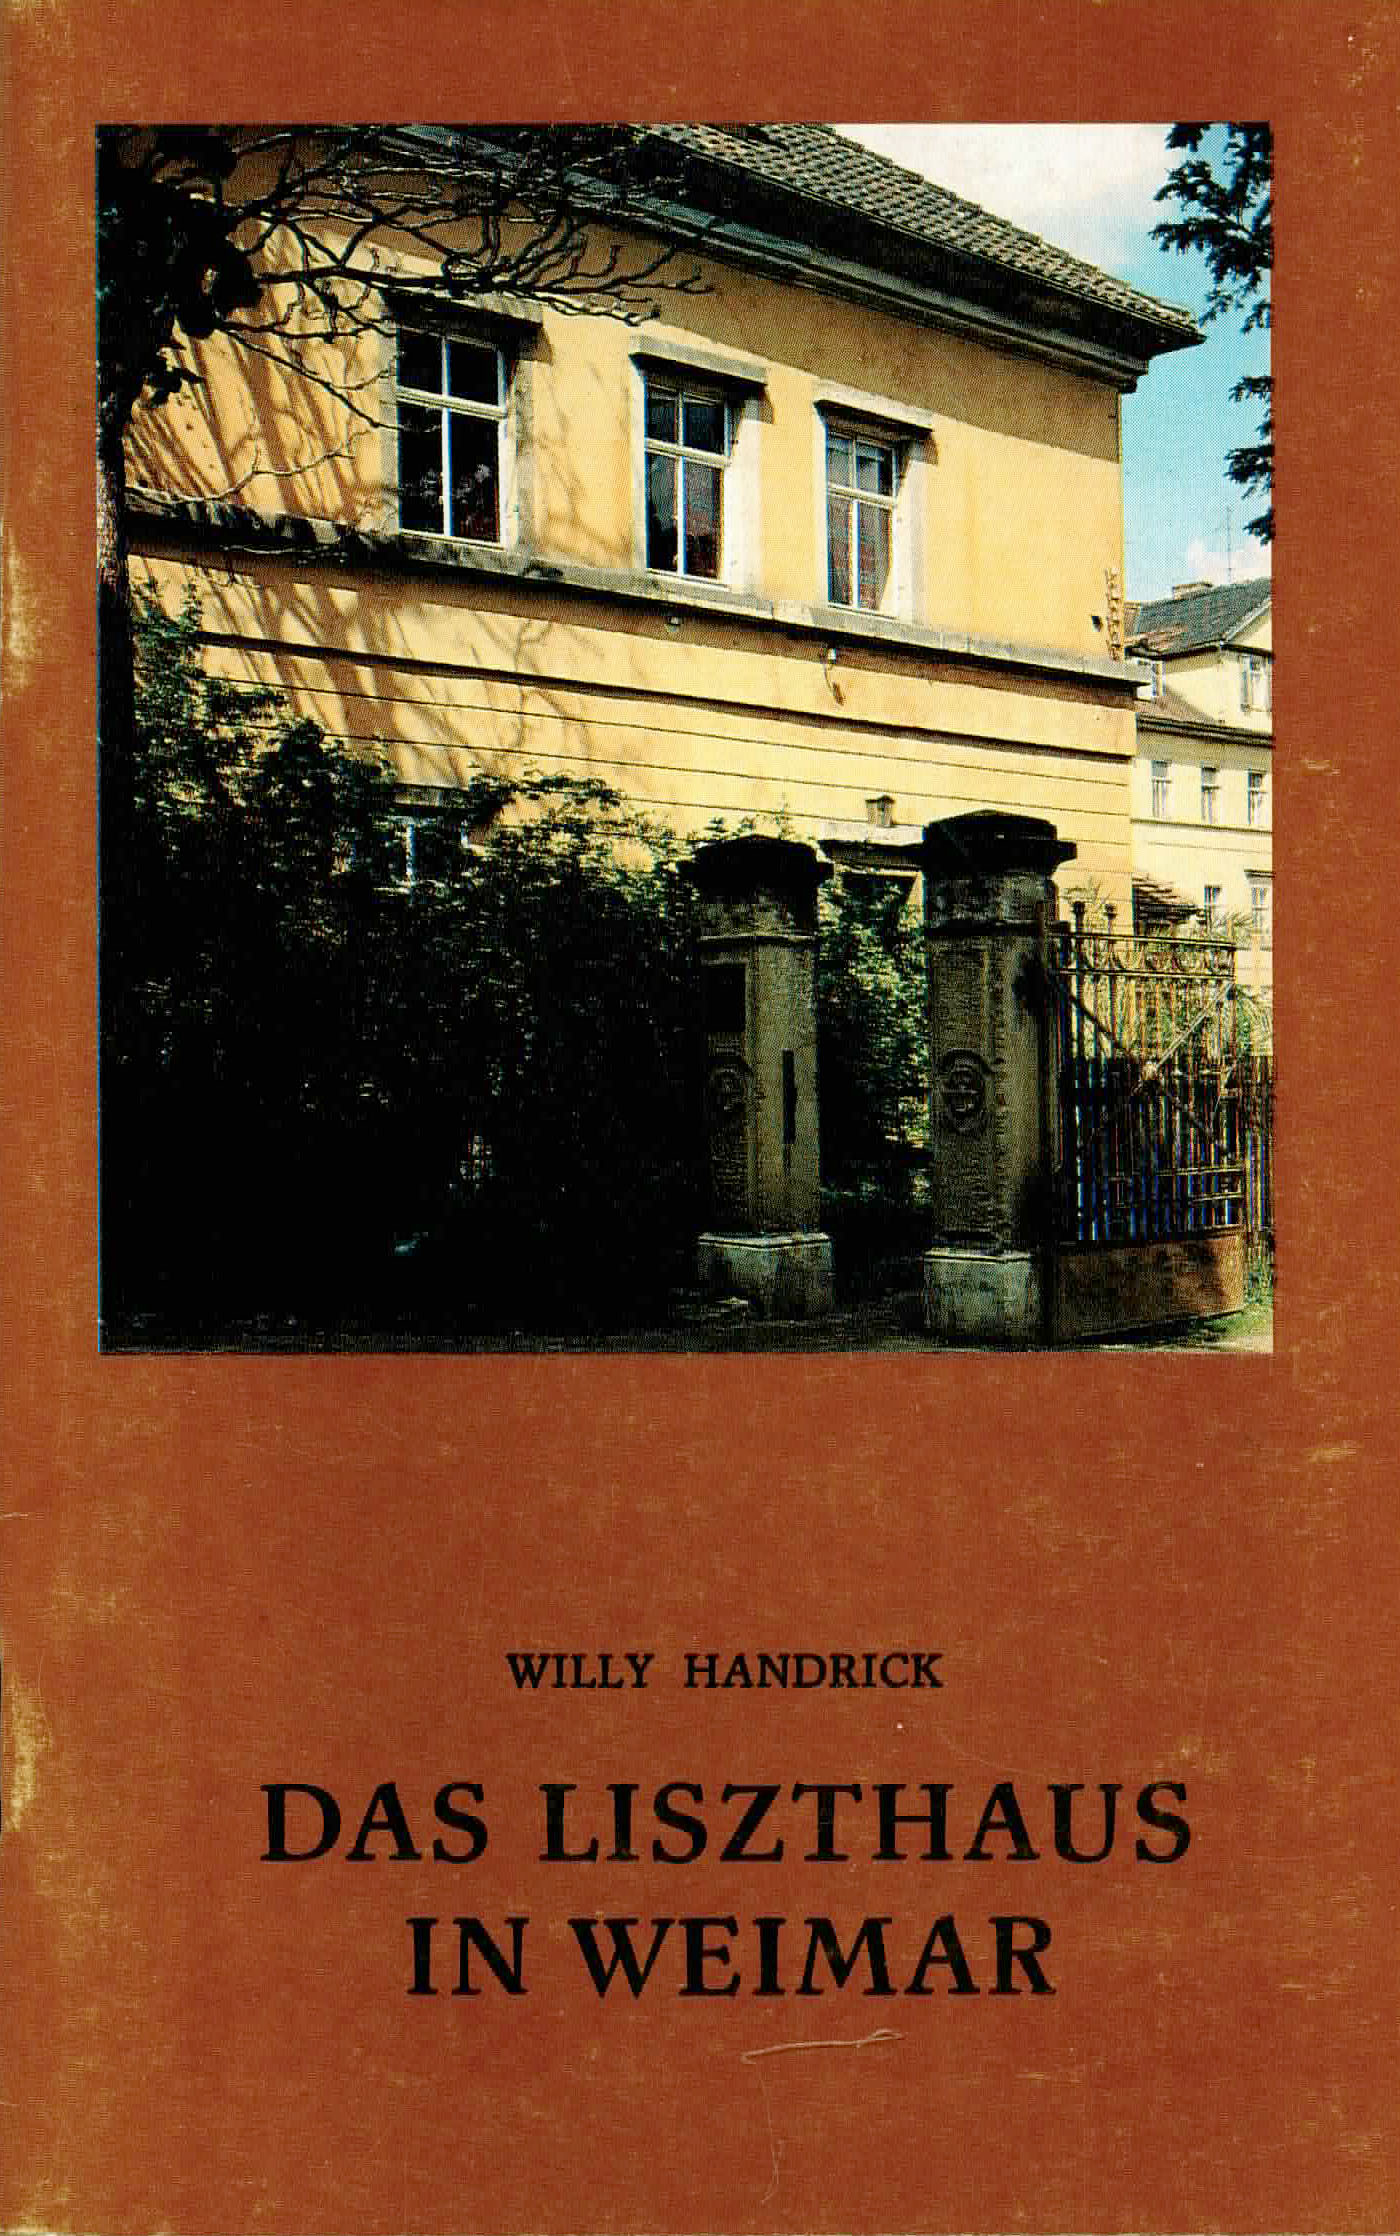 Das Liszthaus in Weimar - Handrick, Willy